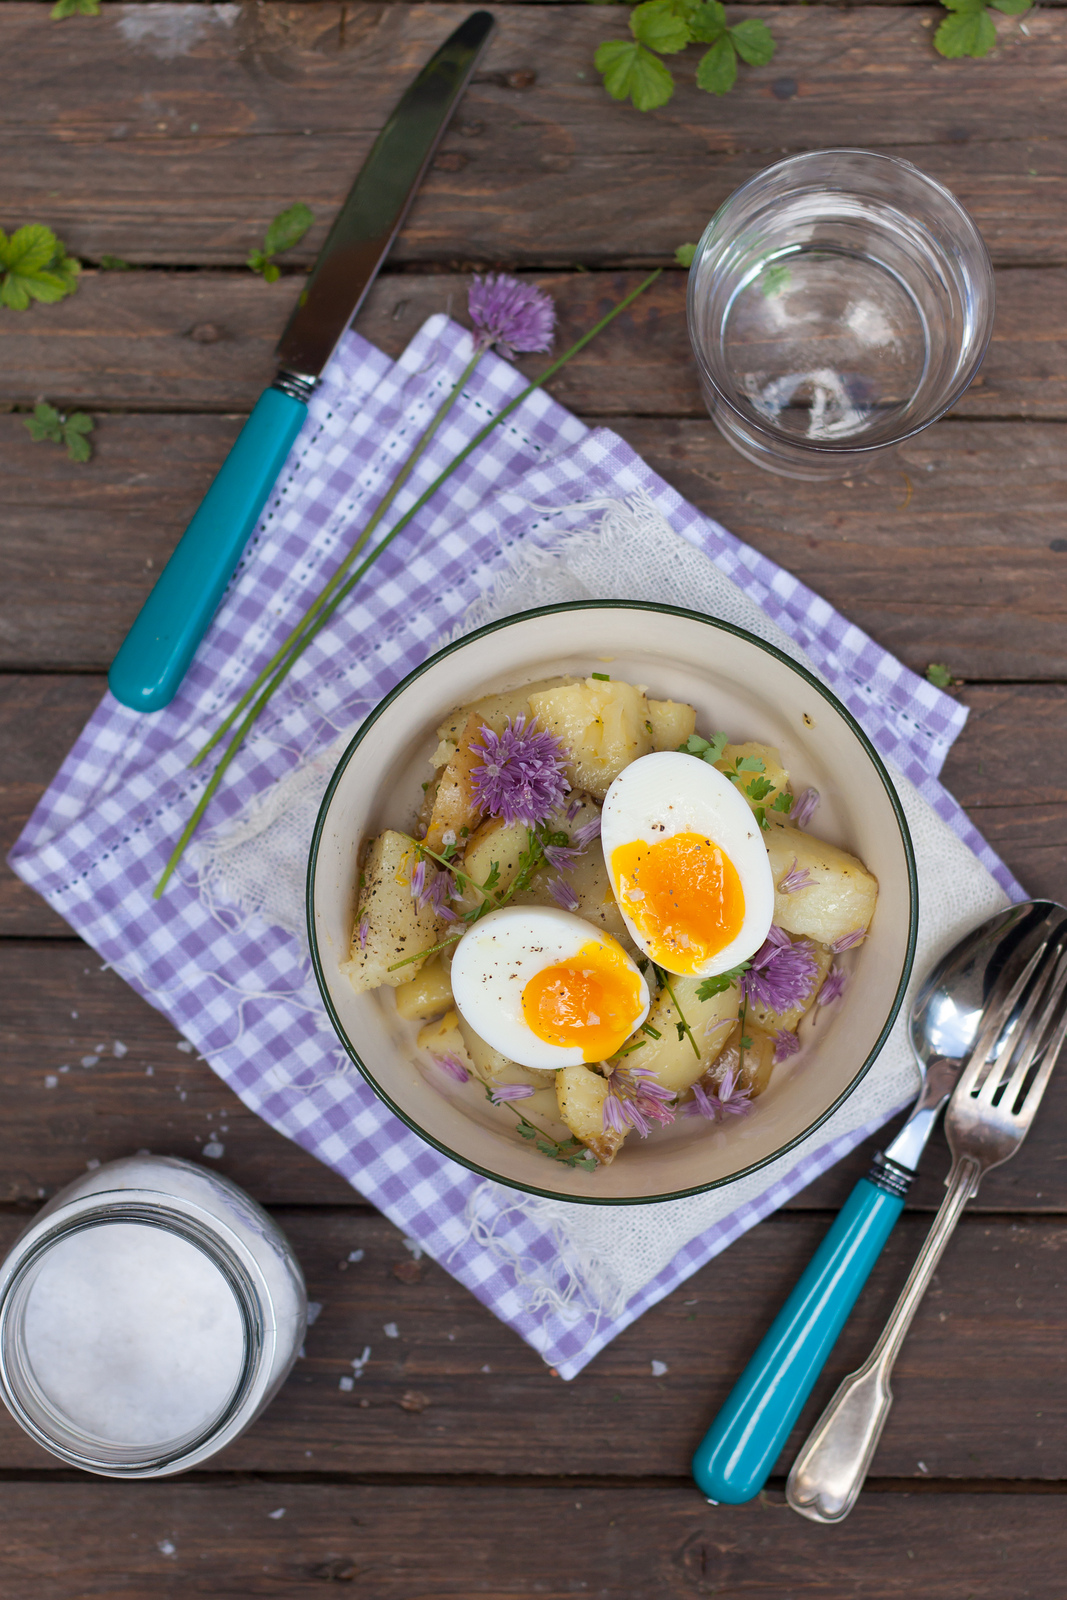 You Buy Me With Flowers: Potato Salad With Chives Flowers And Soft Boiled Eggs